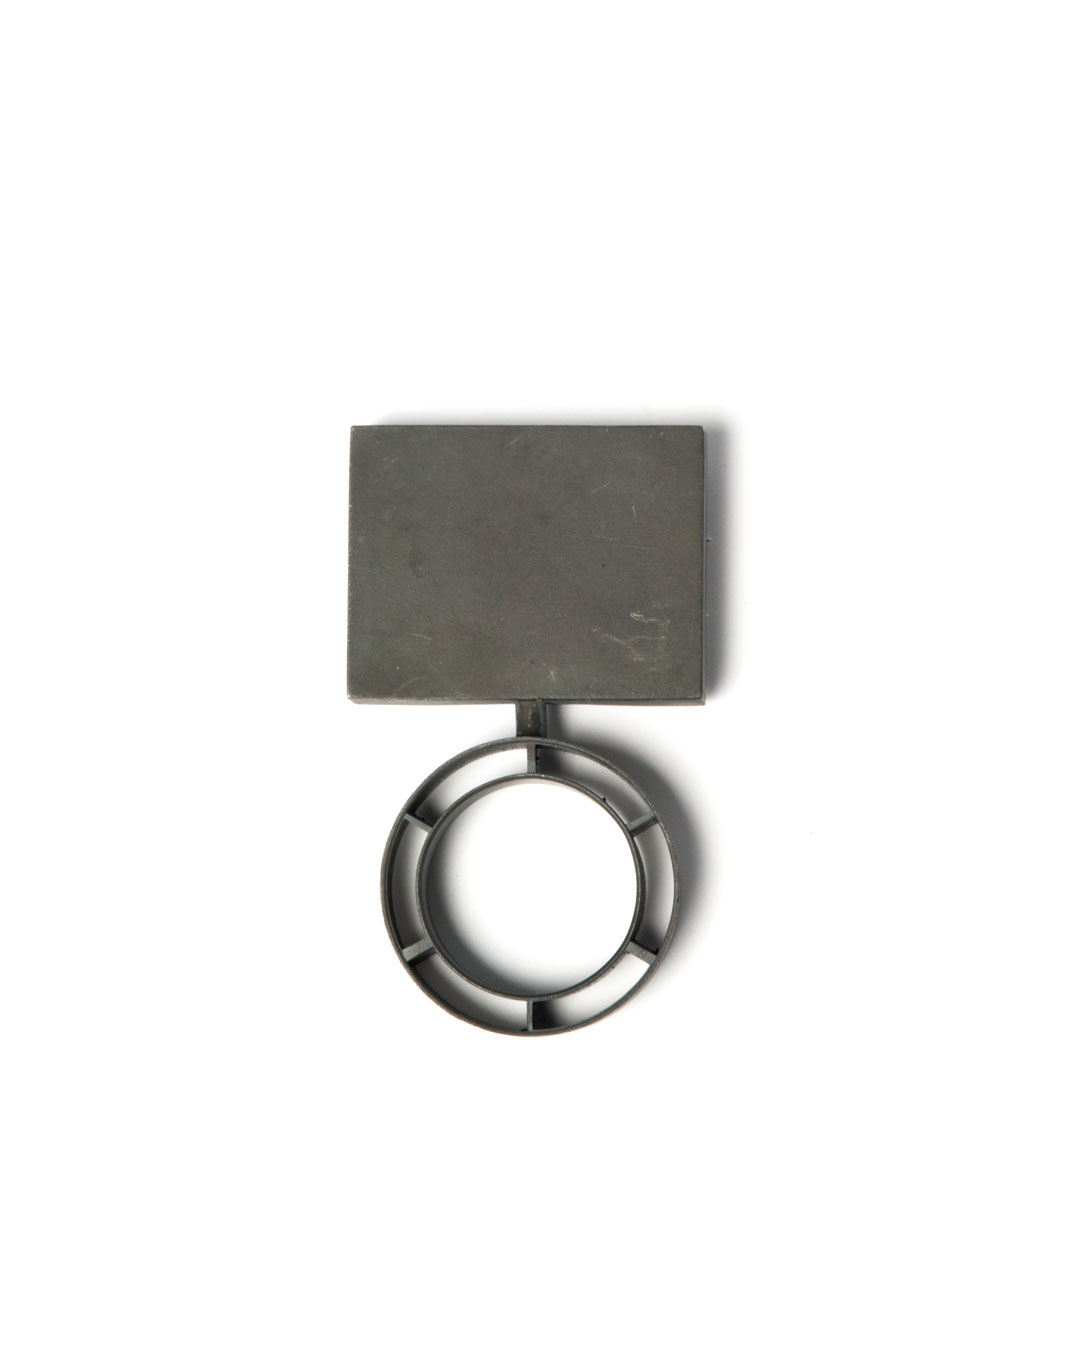 Winfried Krüger, untitled, 2010, brooch; oxidised silver, 80 x 45 mm, €1940